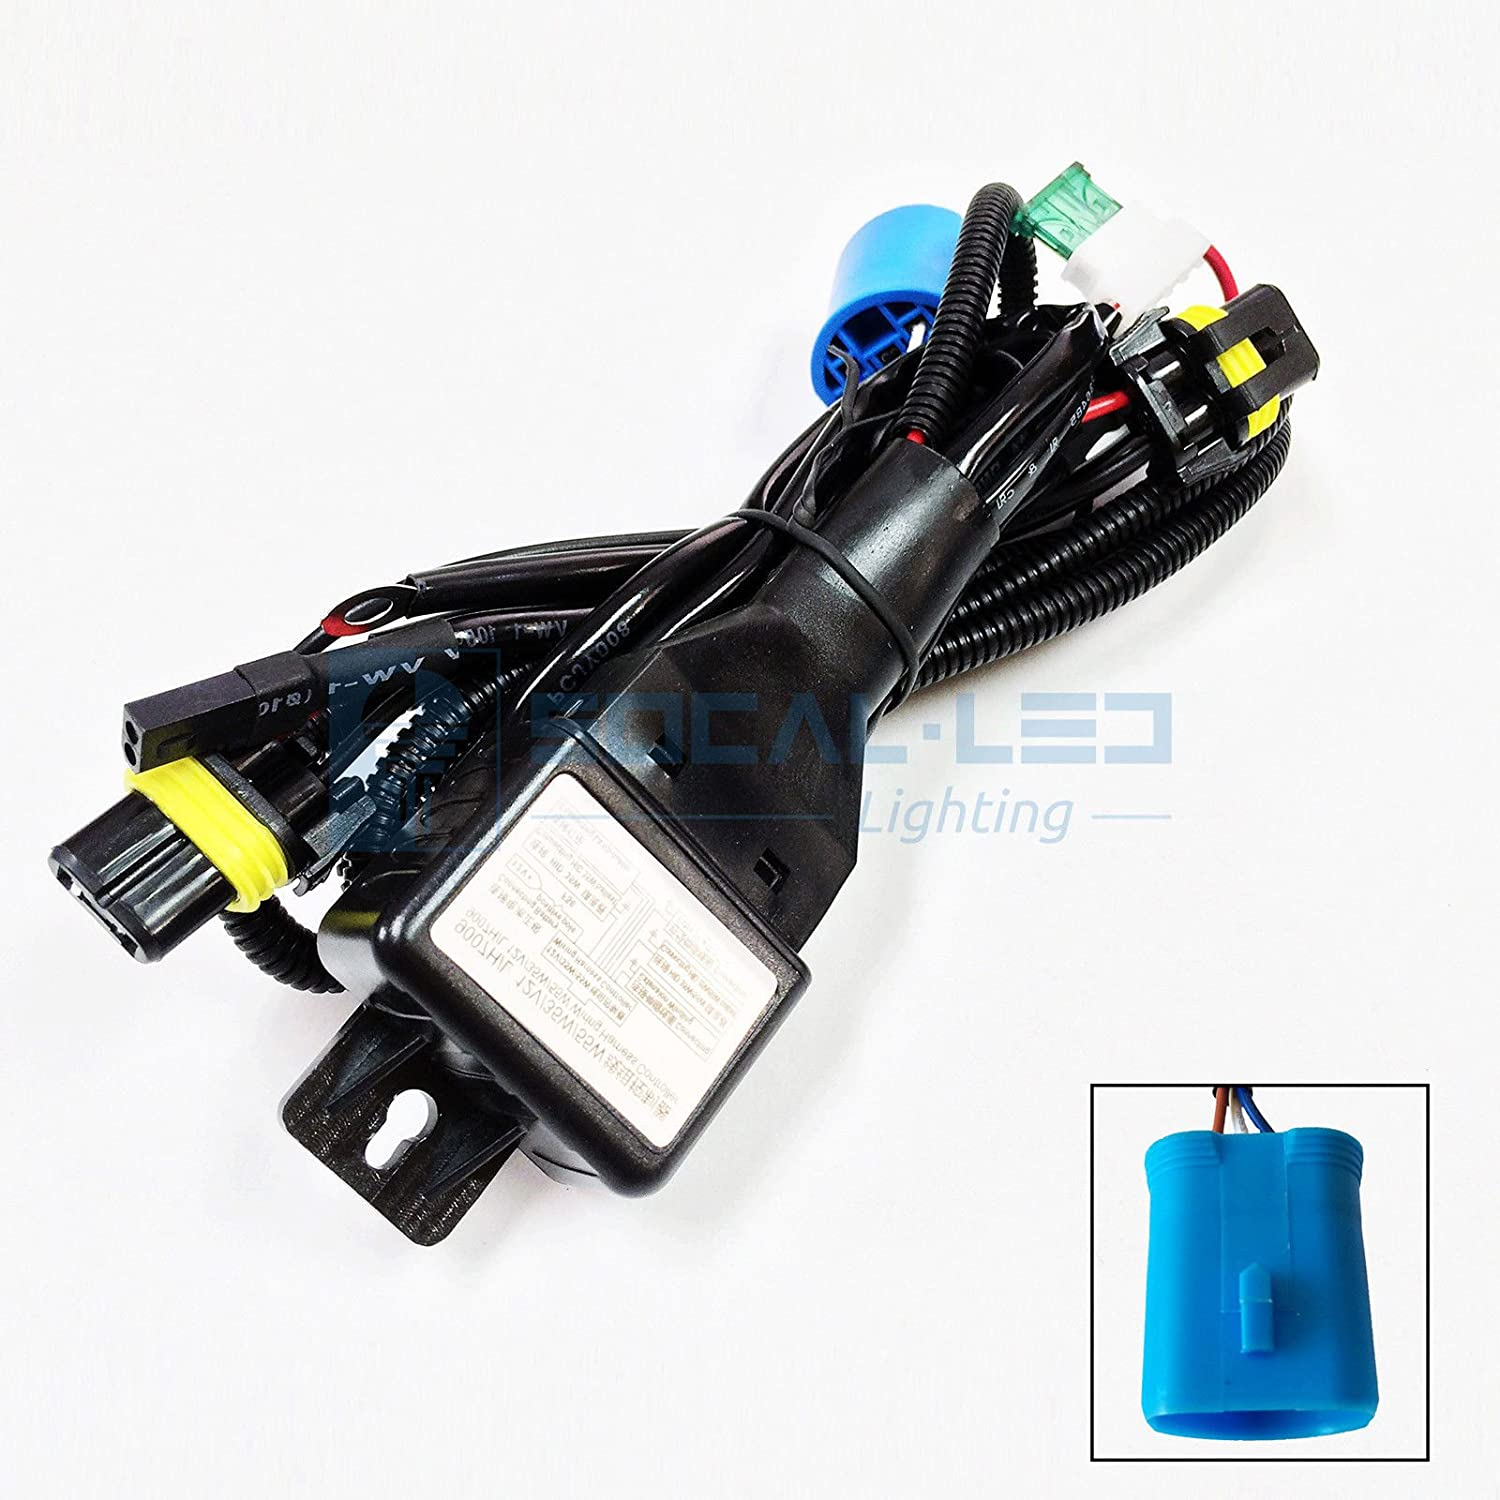 81iLl8cXonL._SL1500_ amazon com o nex hid relay harness 9007 (hb5 9004) 12v 35w 55w bi hid 12v wiring harness controller at gsmportal.co